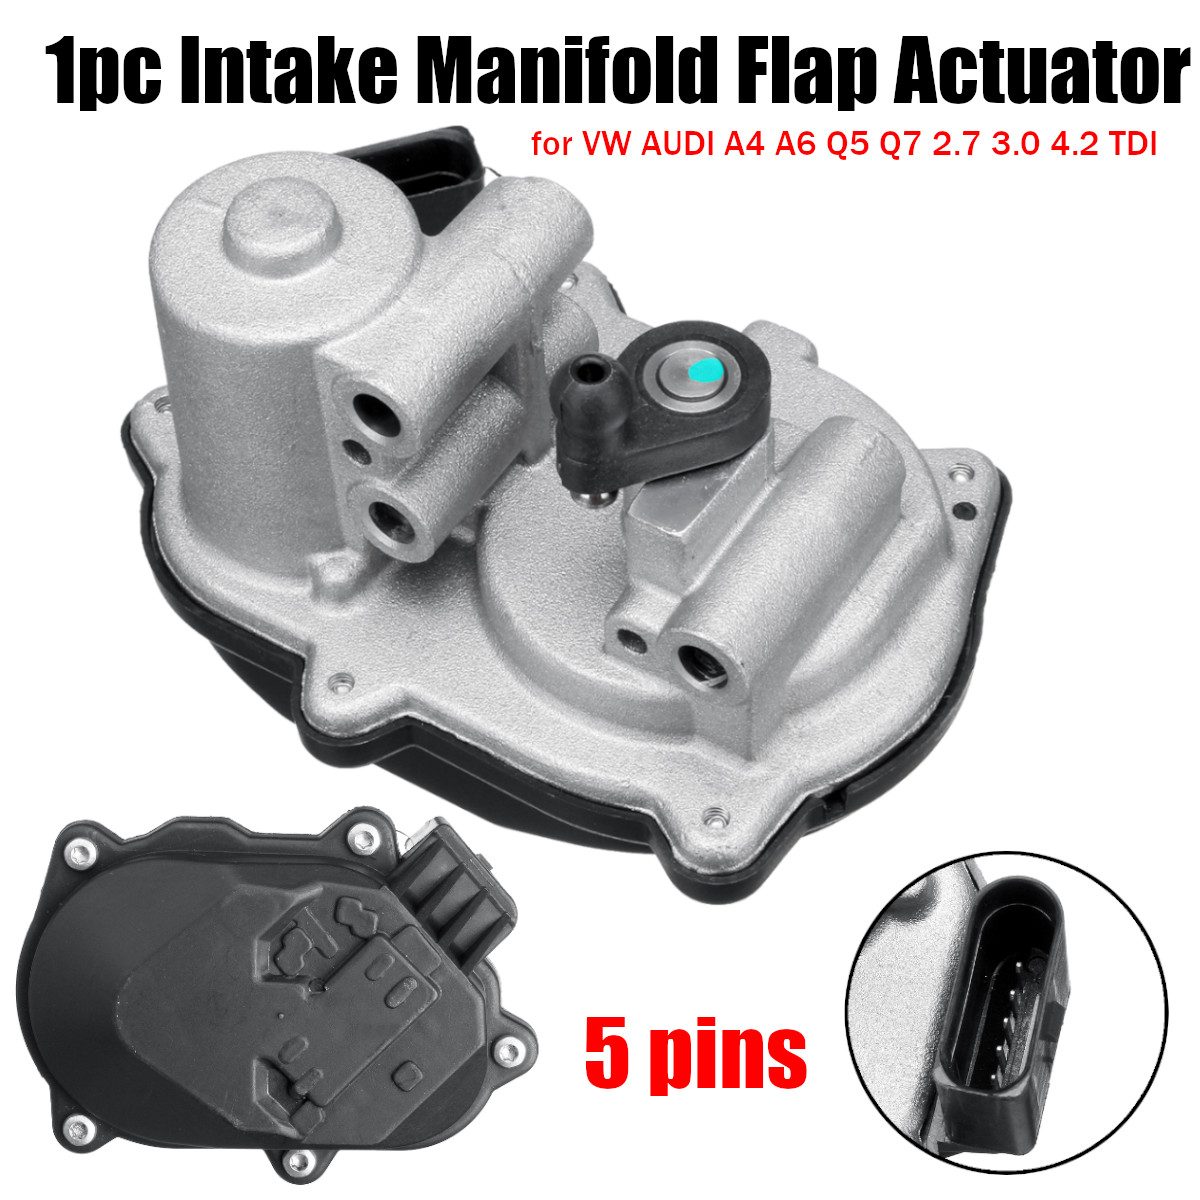 Intake Manifold Flap Actuator A2C53247916 A2C53289031 for VW for AUDI A4 A6 Q5 Q7 2.7 3.0 4.2 TDIIntake Manifold Flap Actuator A2C53247916 A2C53289031 for VW for AUDI A4 A6 Q5 Q7 2.7 3.0 4.2 TDI